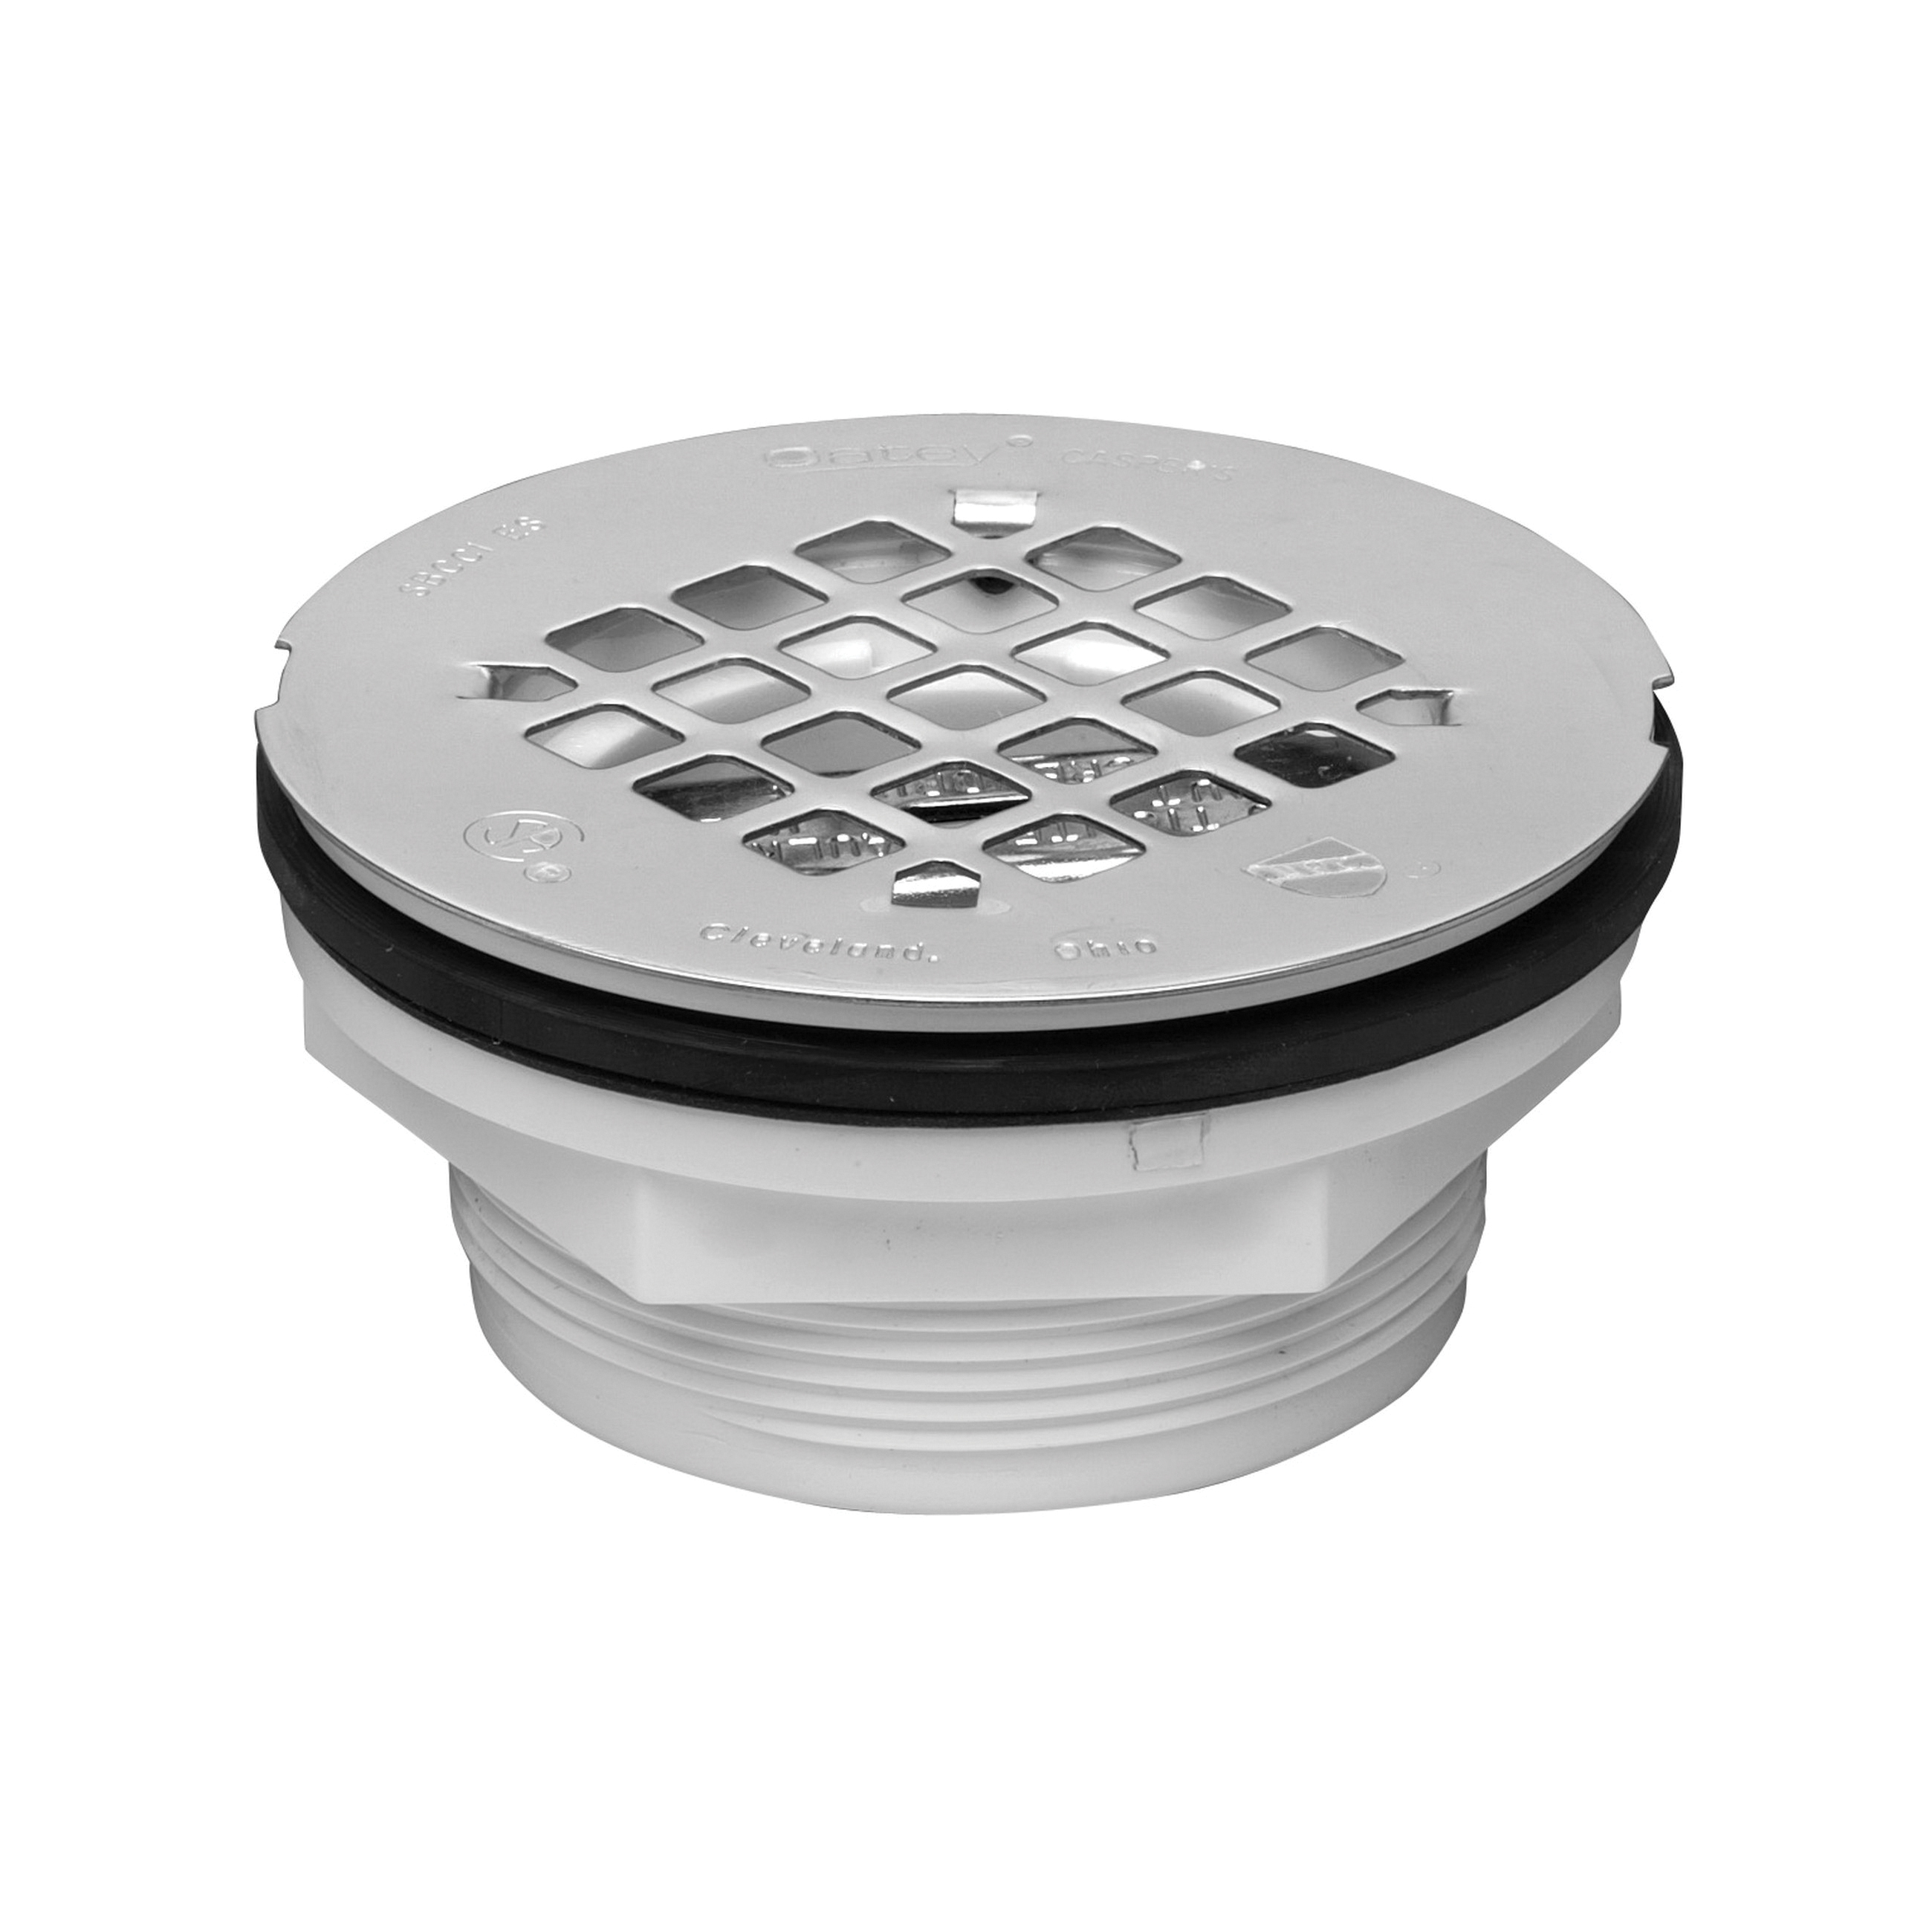 Oatey® 42099 101 No Caulk Shower Drain With Stainless Steel Strainer, 2 in, 4-1/4 in Stainless Steel Grid, PVC Drain, Domestic